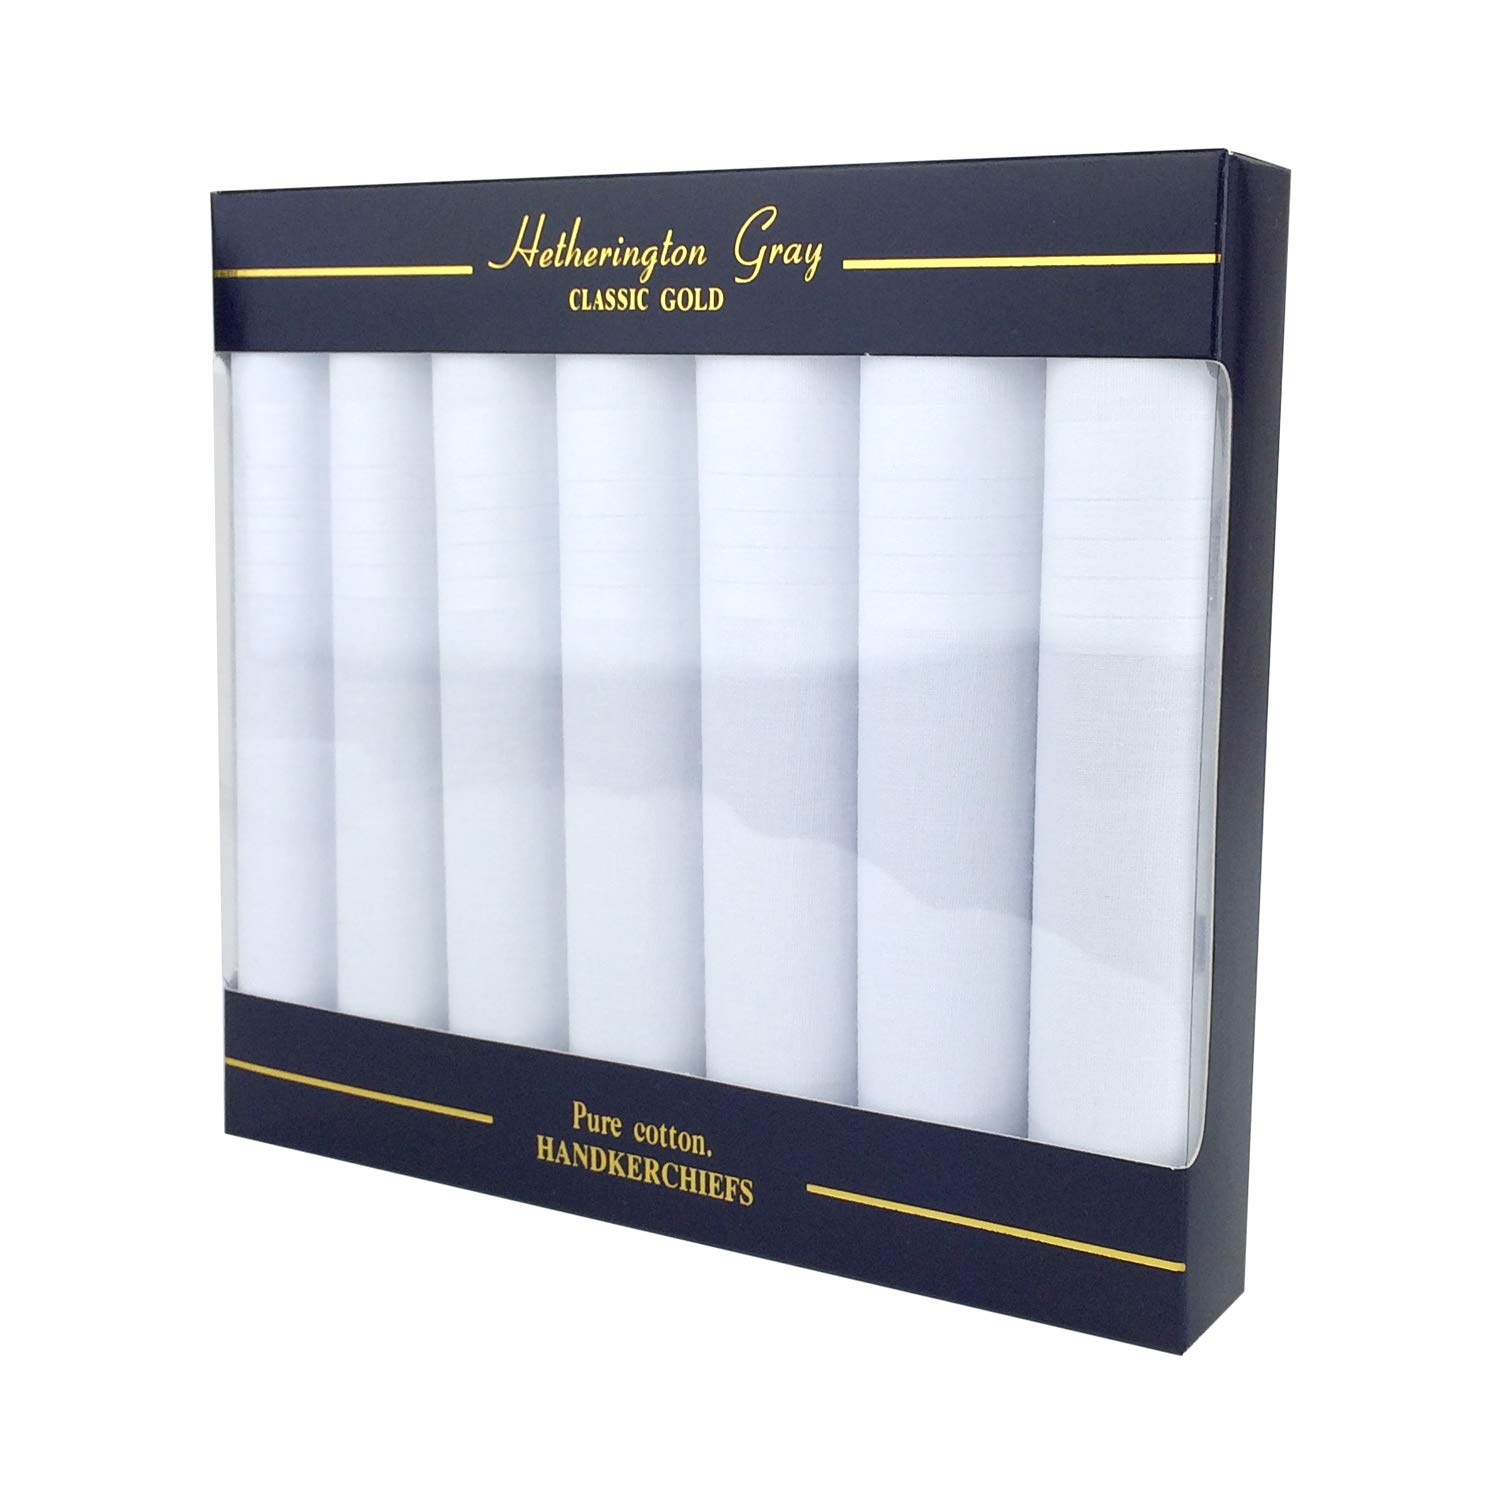 Mens White Handkerchiefs Quality Cotton Gents Hankies 7 Pack of Mans Handkerchieves Plain White 100/% Soft Cotton Pocket Hanks By Hetherington Gray Supplied Boxed Perfect as a Gift for Men